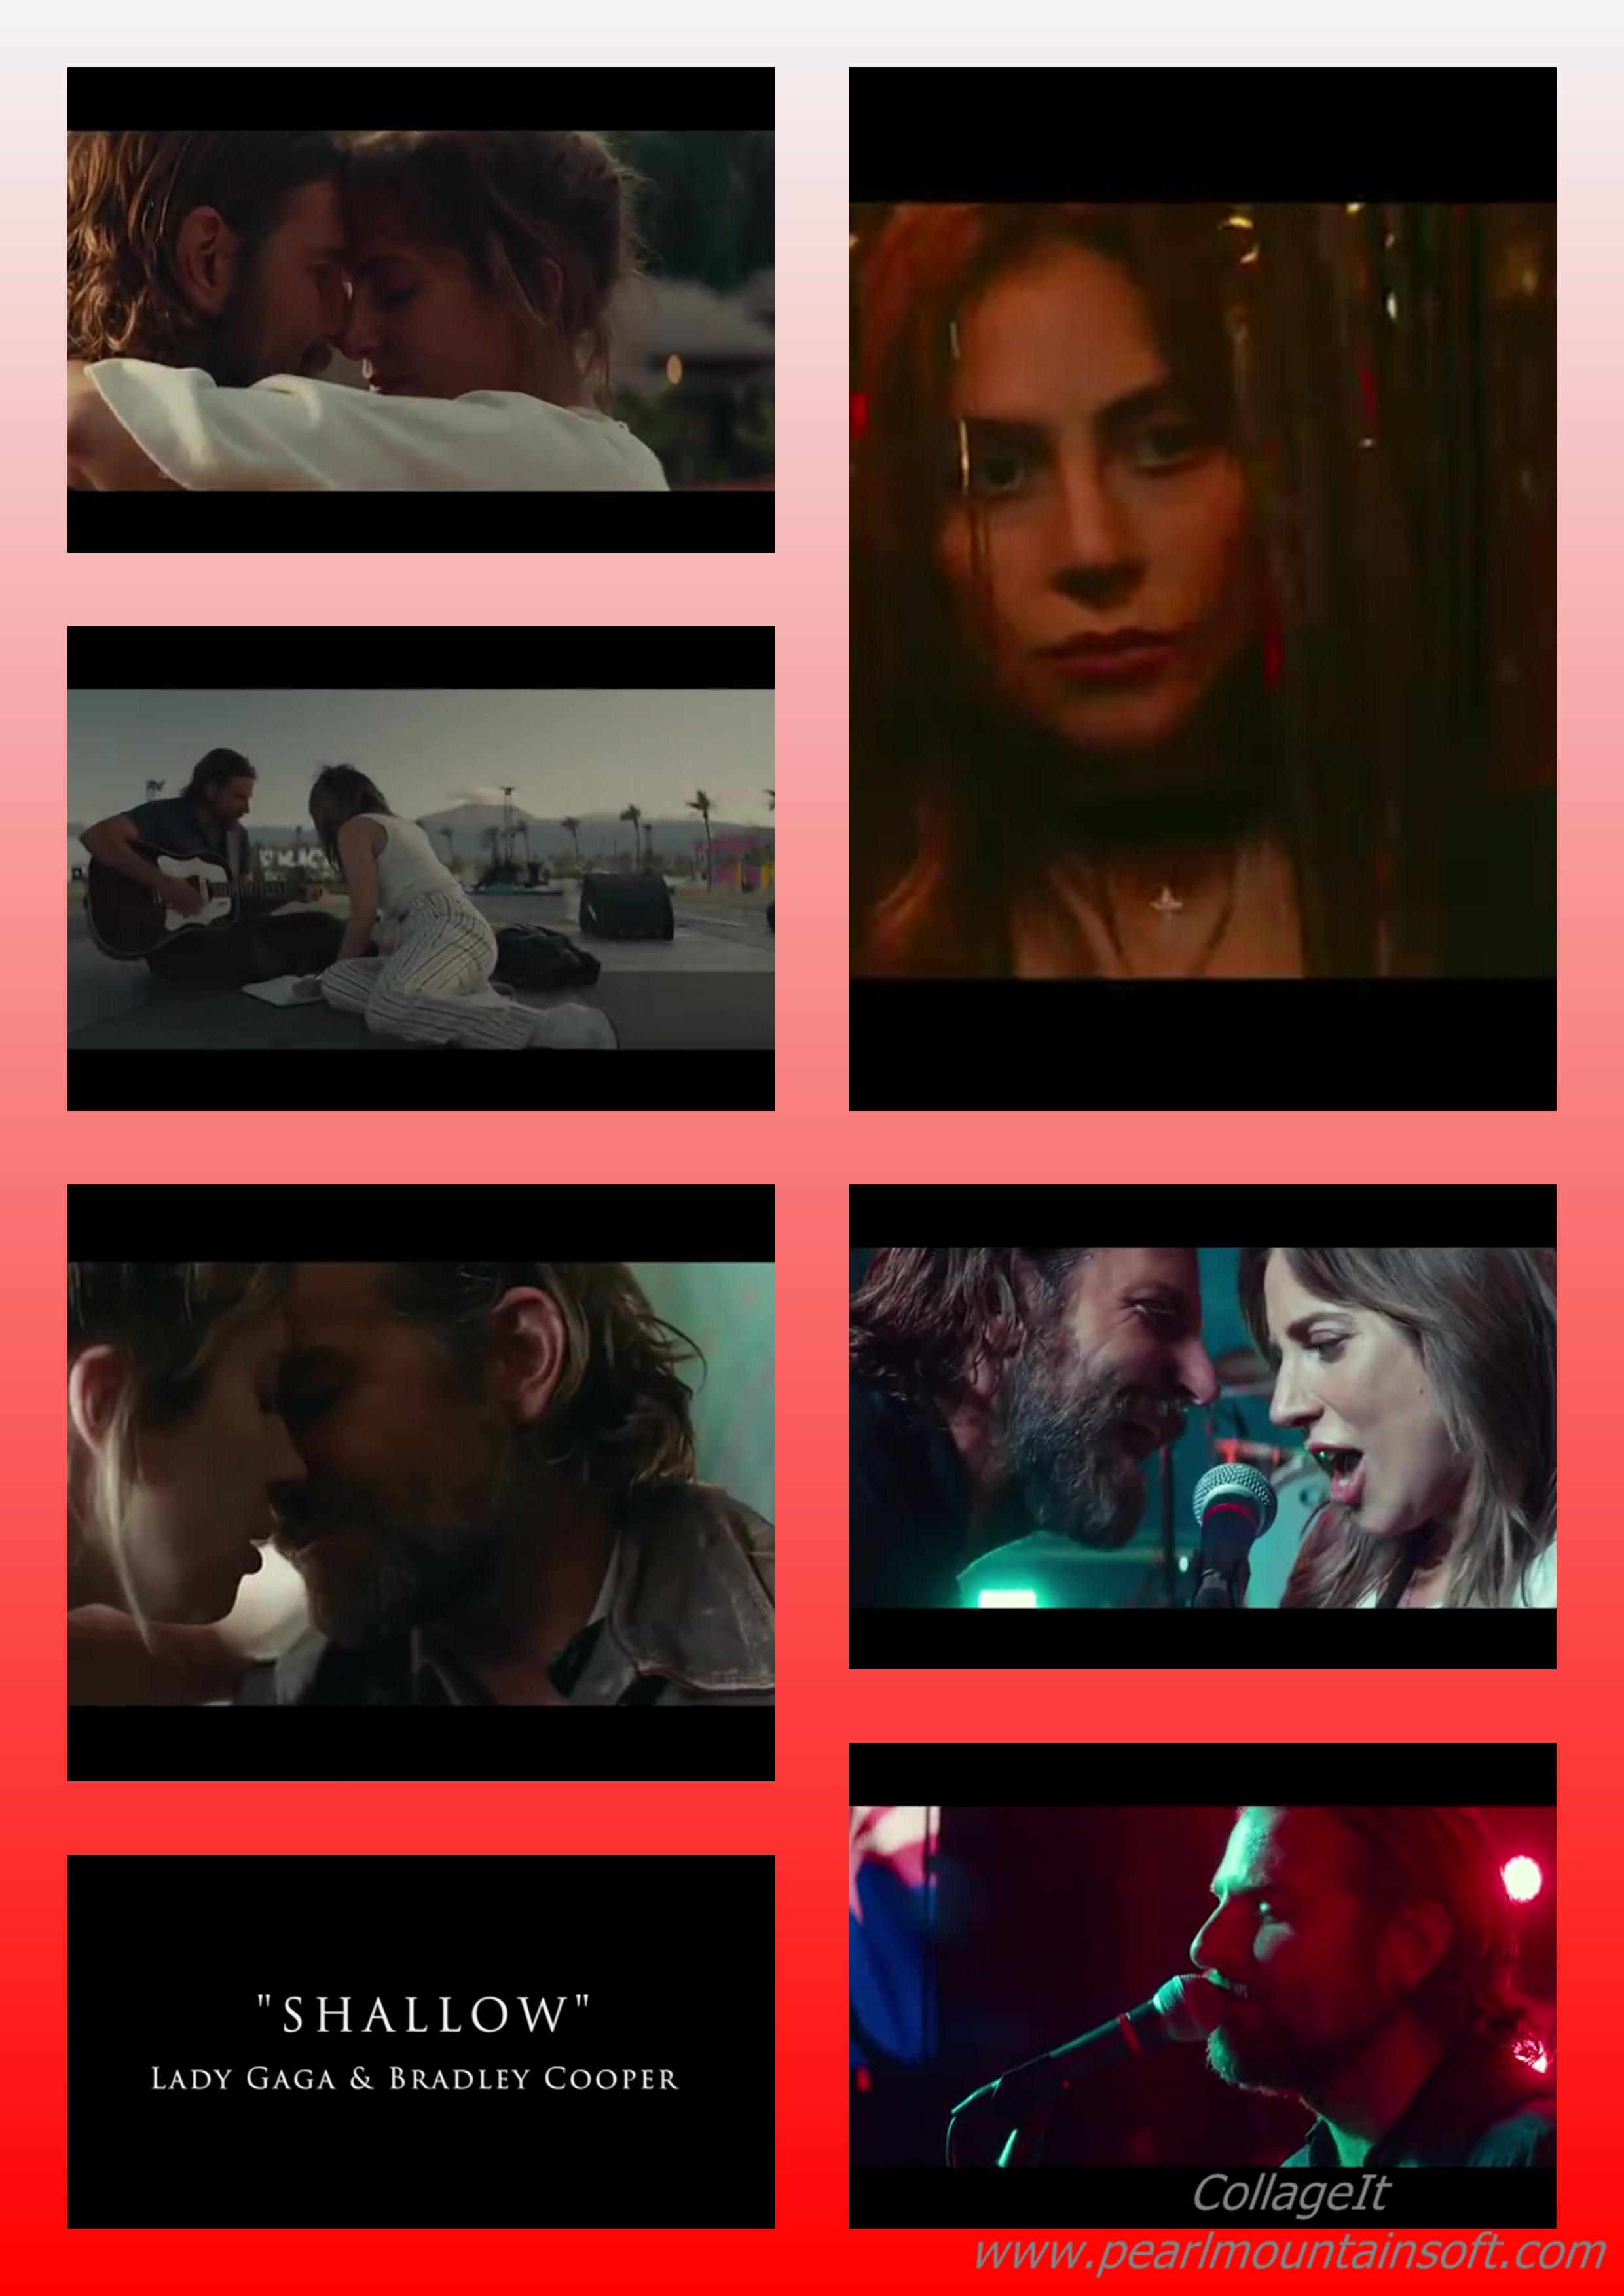 """(+LYRICS+ TRANSLATION+ MEANING) MUSIC REVIEW: SHALLOW BY LADY GAGA AND BRADLEY COOPER """"NOT SHALLOW AT ALL!"""" + WHAT THE SONG SHALLOW REALLY MEANS"""